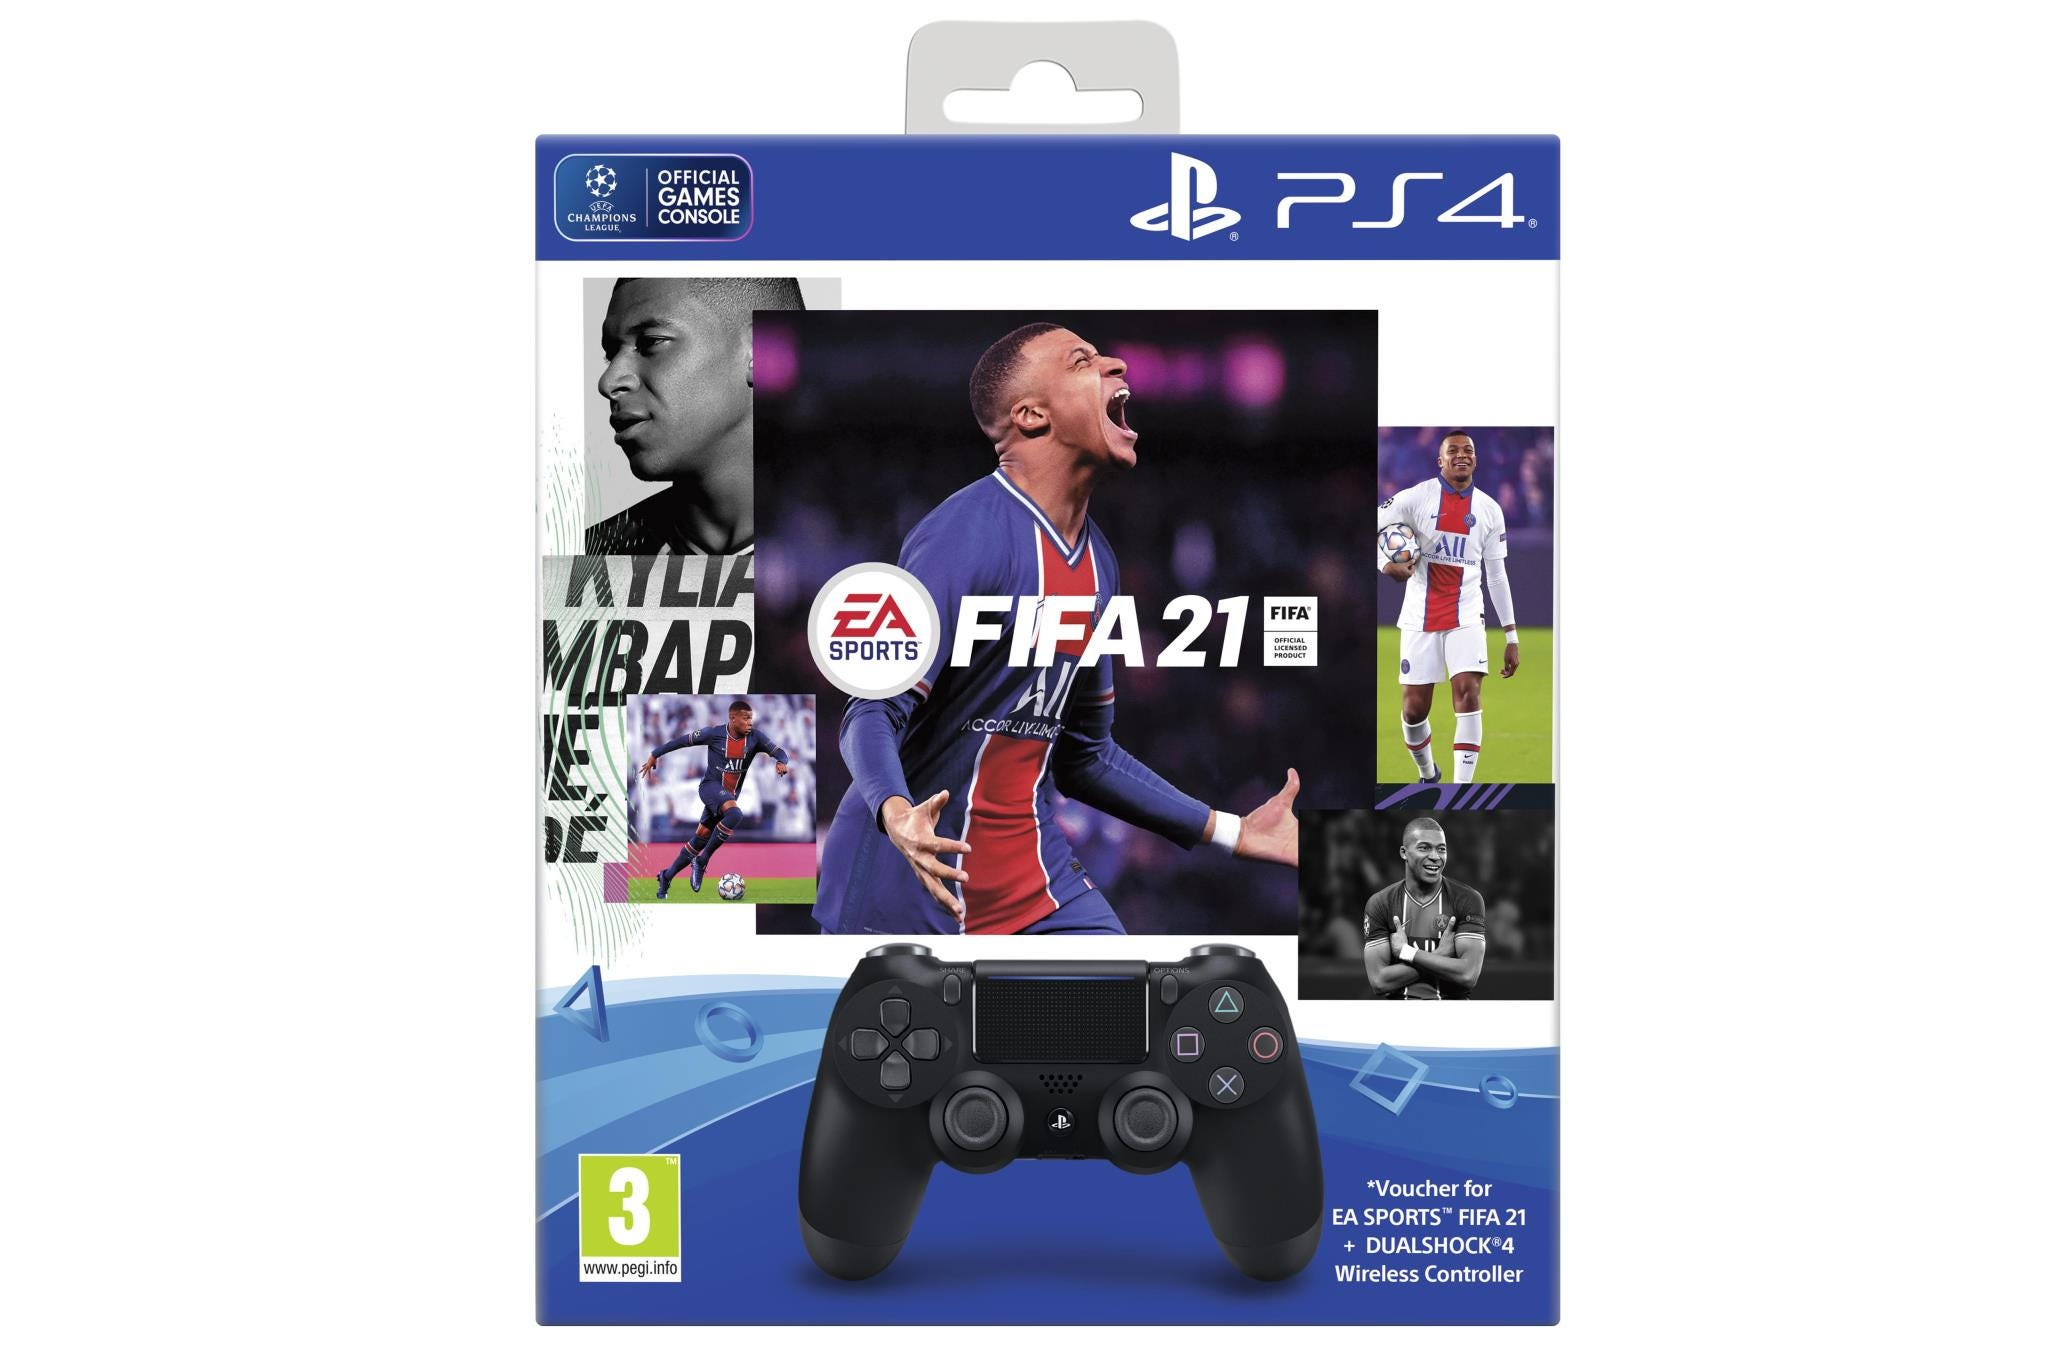 Sony PlayStation 4 DualShock Controller with FIFA 2021 Digital Download - Black